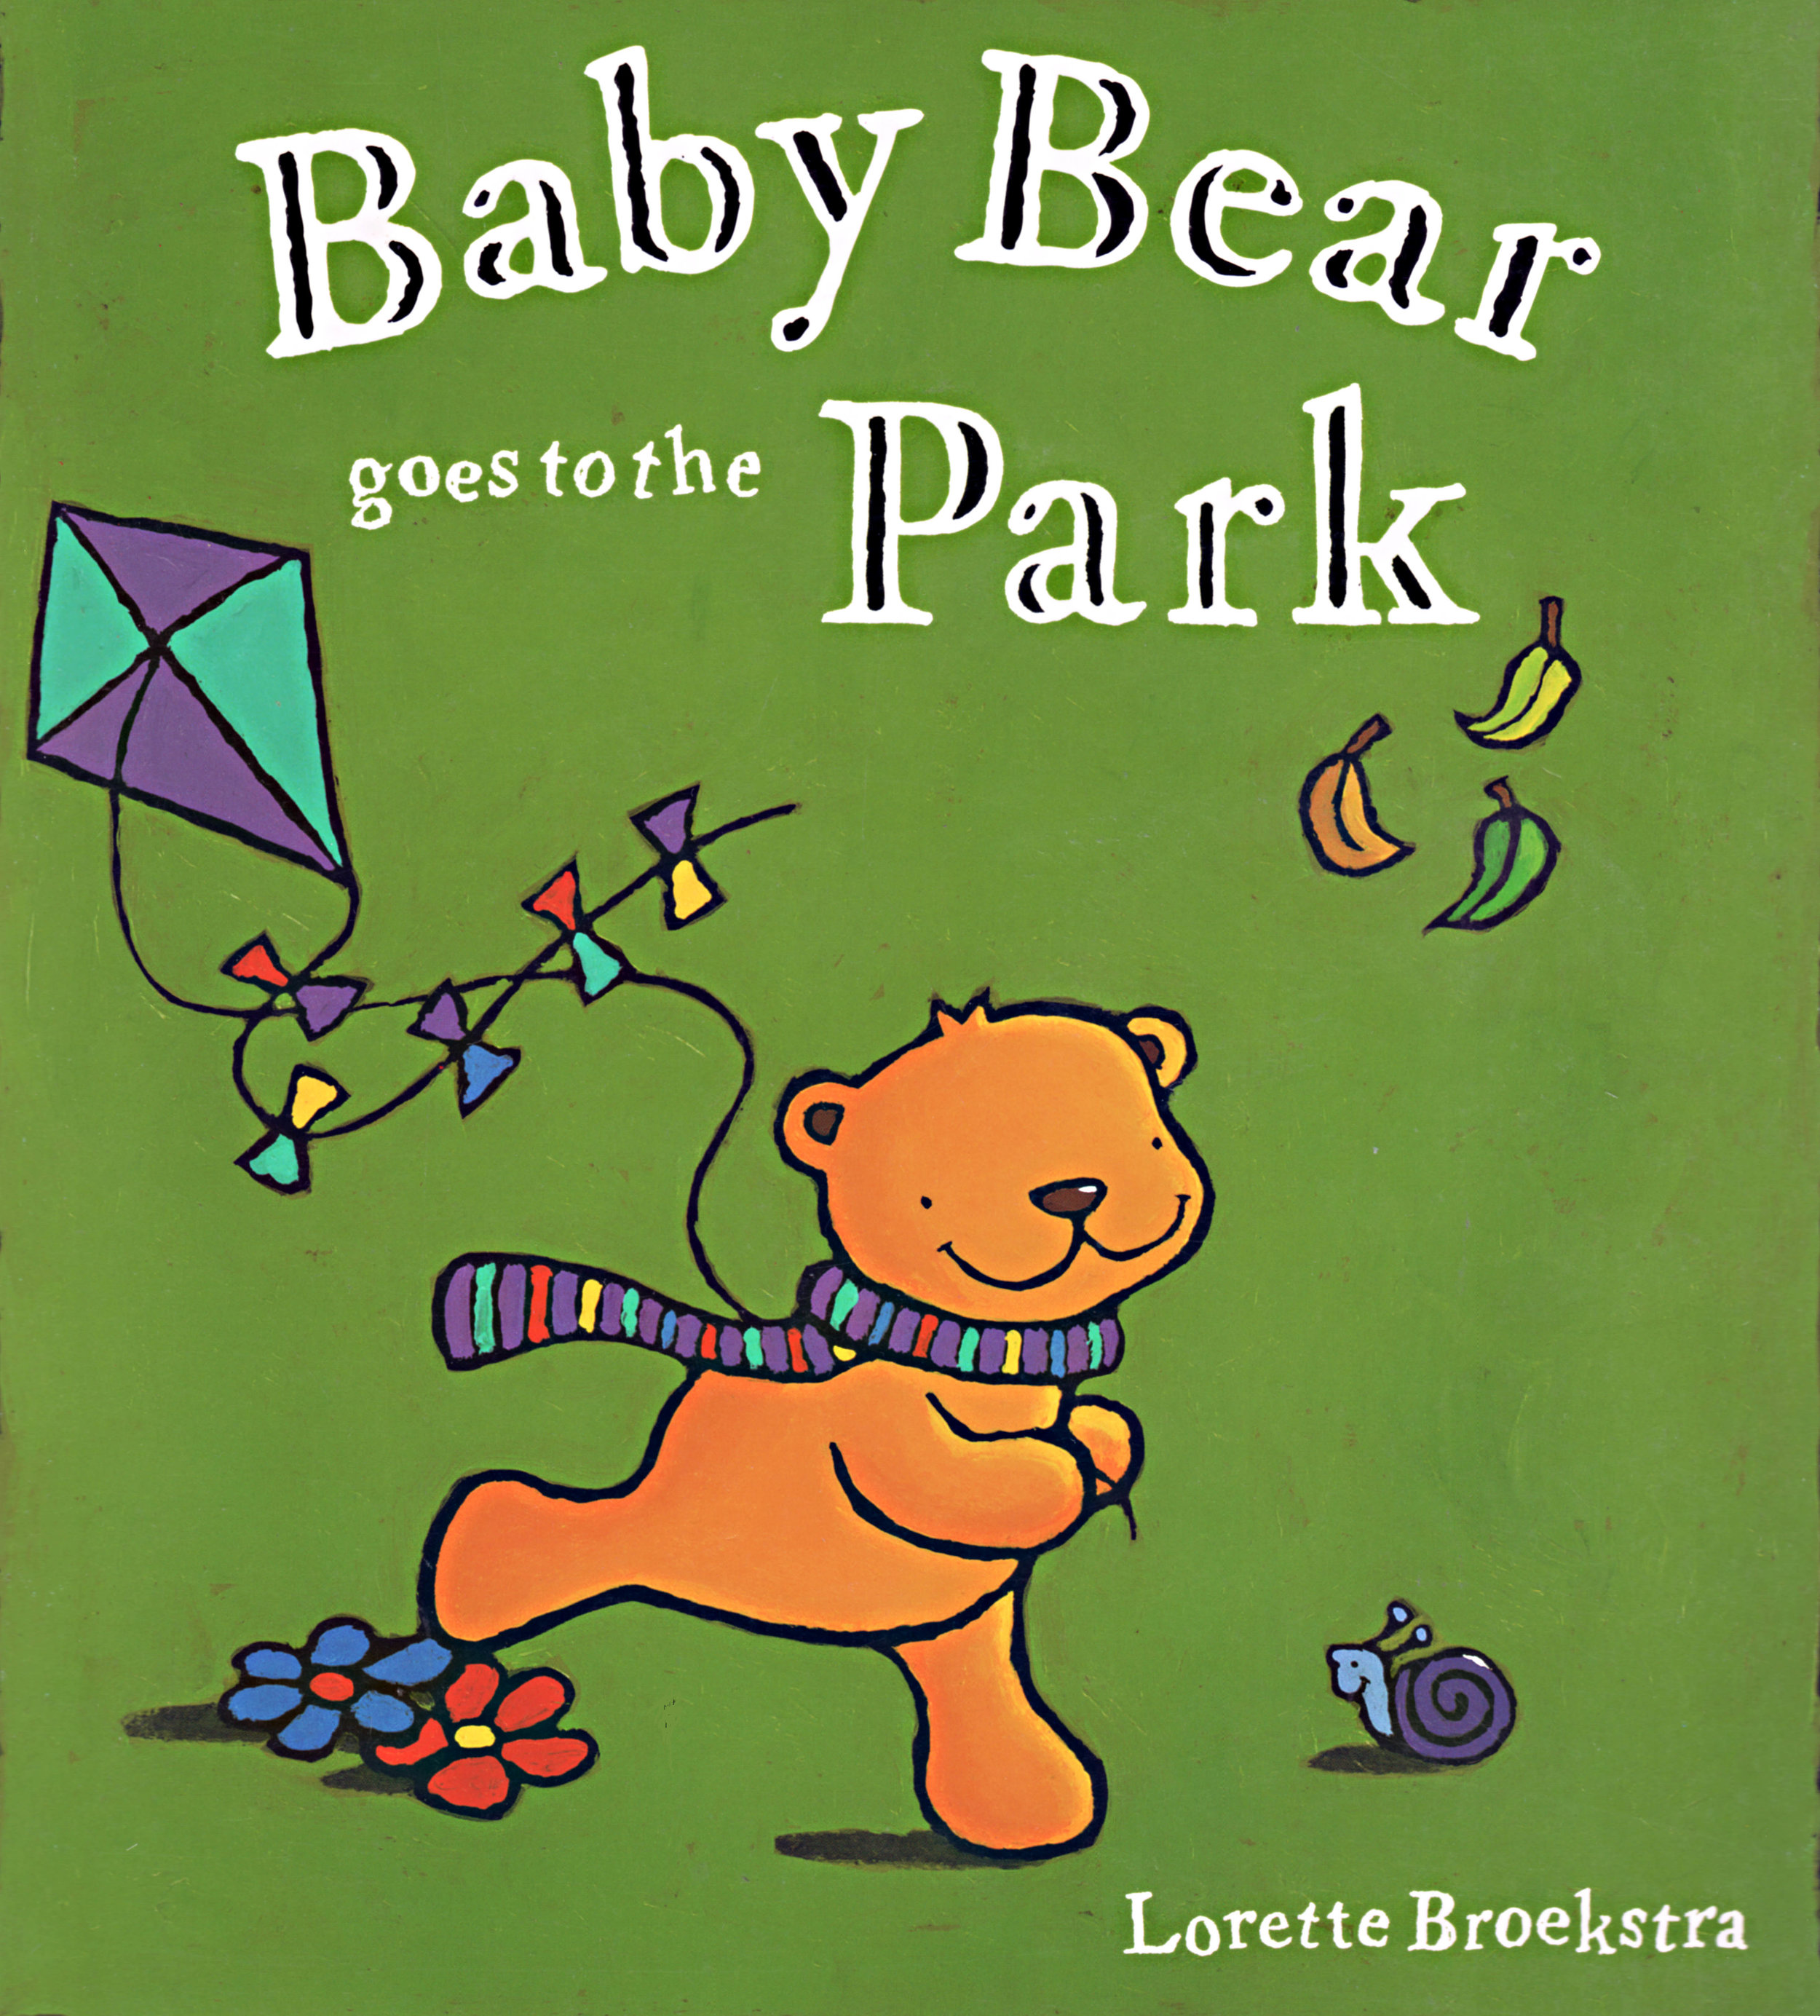 Baby Bear goes to the Park